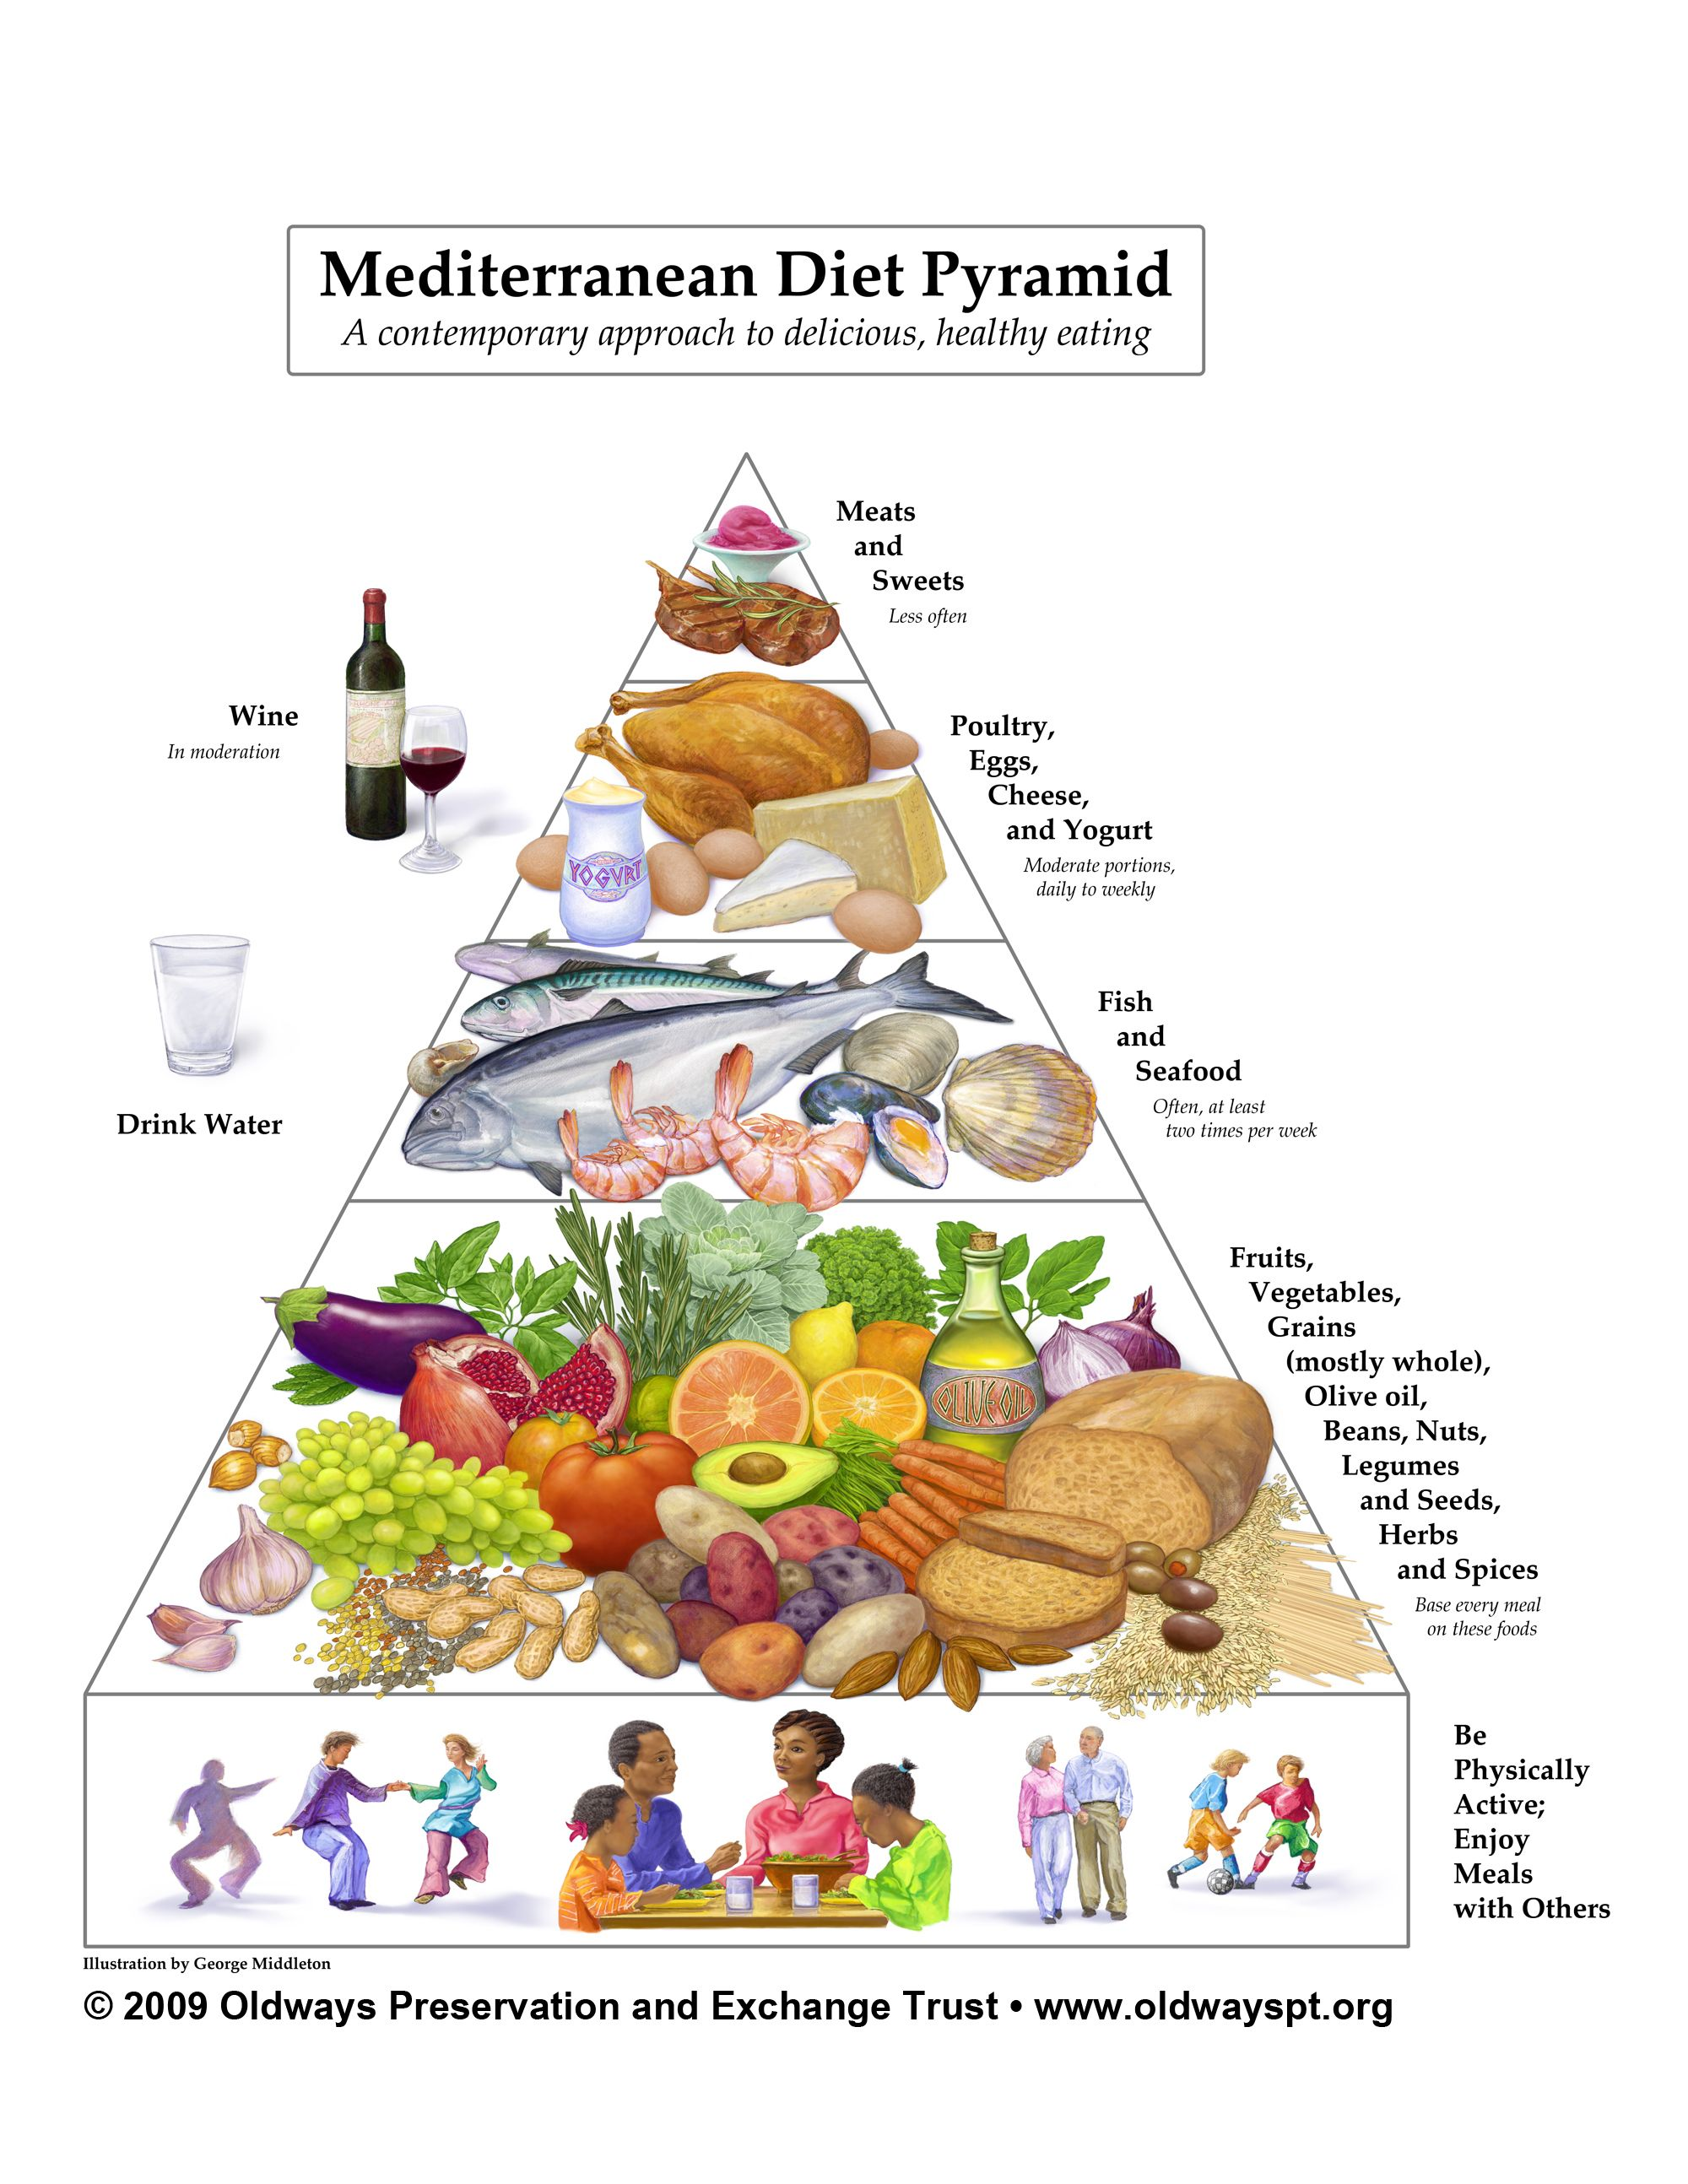 The Mediterranean Diet Is A Heart Healthy Eating Plan That Emphasizes Fruits Vegetables Mediterranean Diet Pyramid Mediterranean Diet Plan Mediterranean Diet